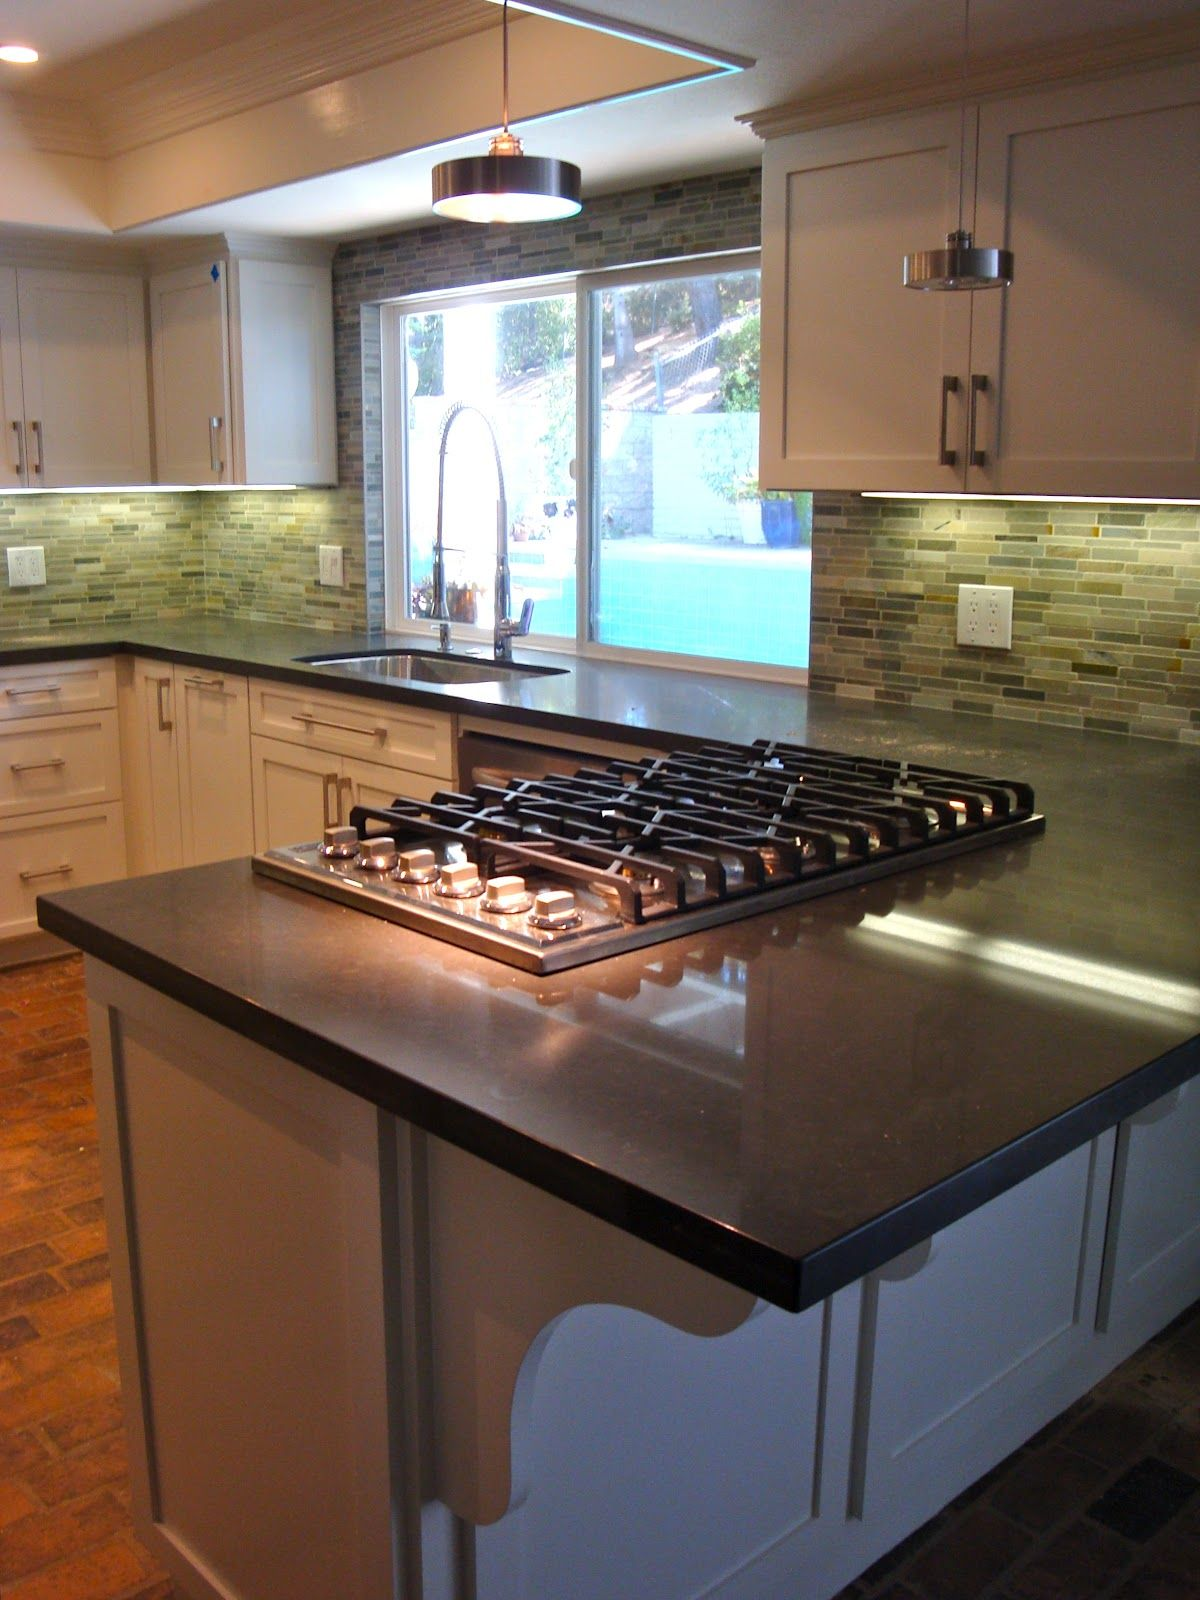 How To Clean Slate Countertops Tasty Kitchen Peninsula With Cooktop Sherri Cassara